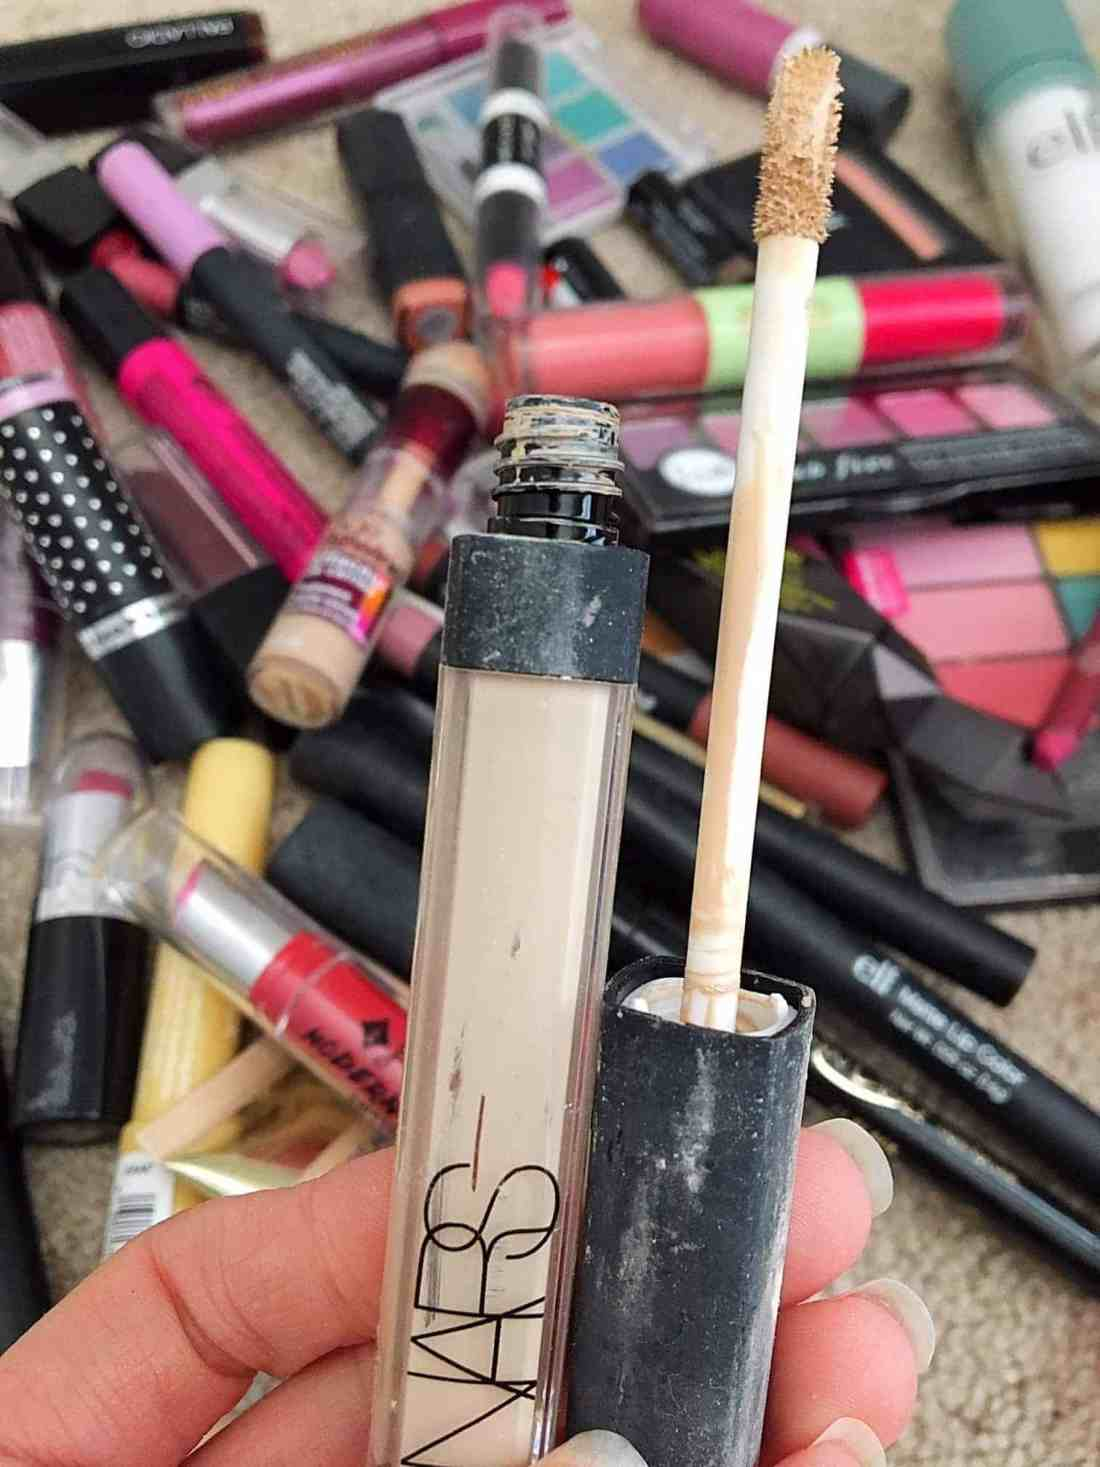 Wondering how long makeup products like foundation, lipstick, and eyeshadow is good for? Today I'm sharing a super helpful expiration guide for beauty products that will help you know exactly when to save or toss all your makeup products and tips on how to tell when products are expired.